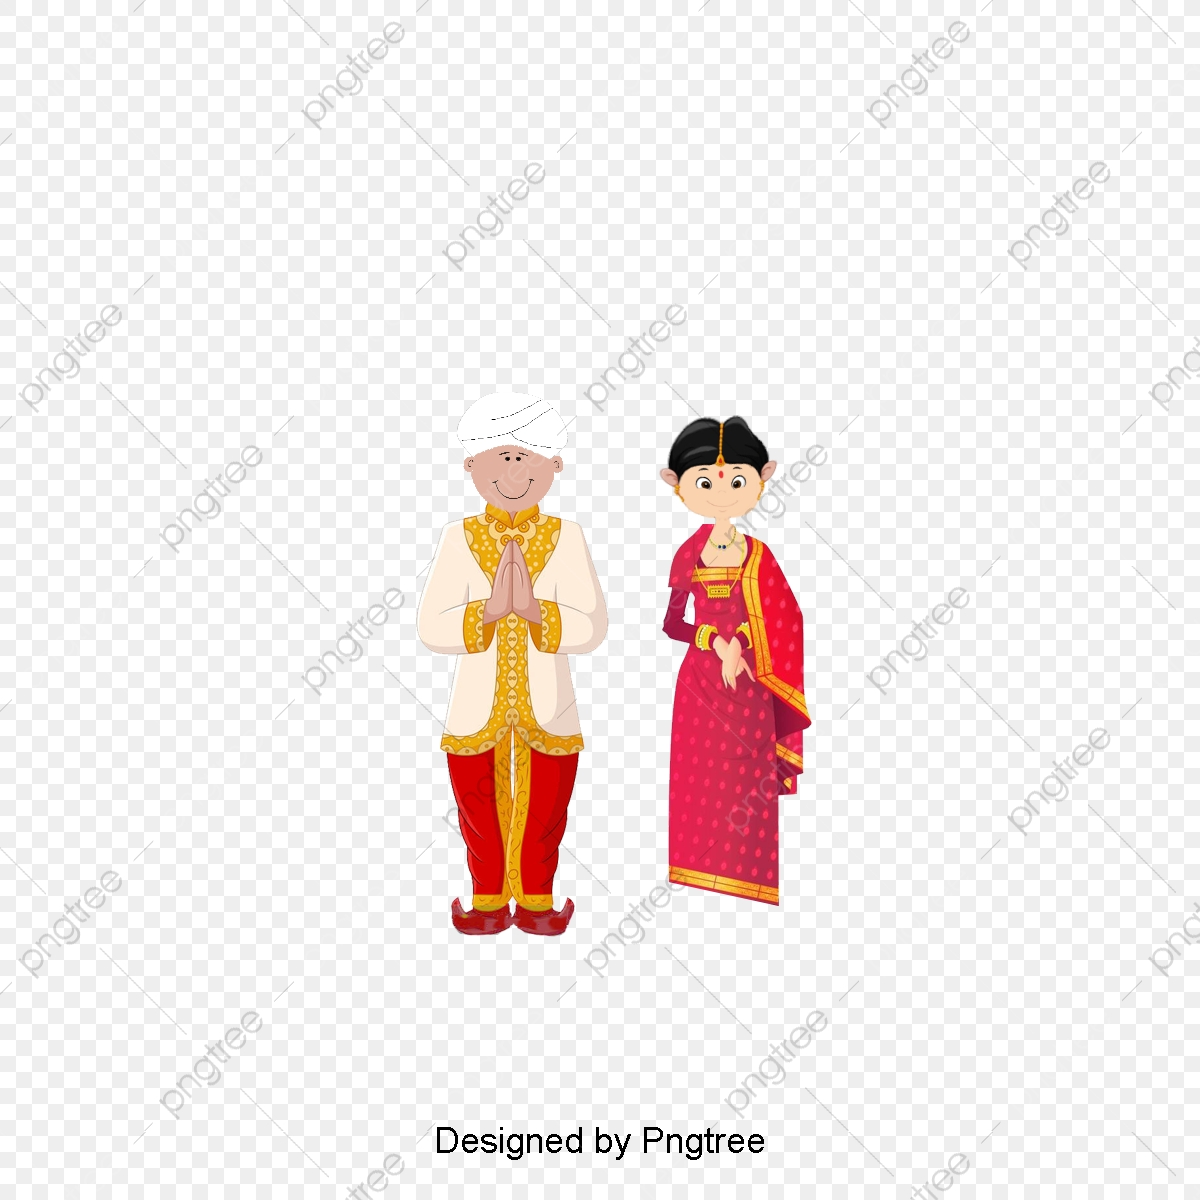 hight resolution of commercial use resource upgrade to premium plan and get license authorization upgradenow traditional indian wedding indian clipart